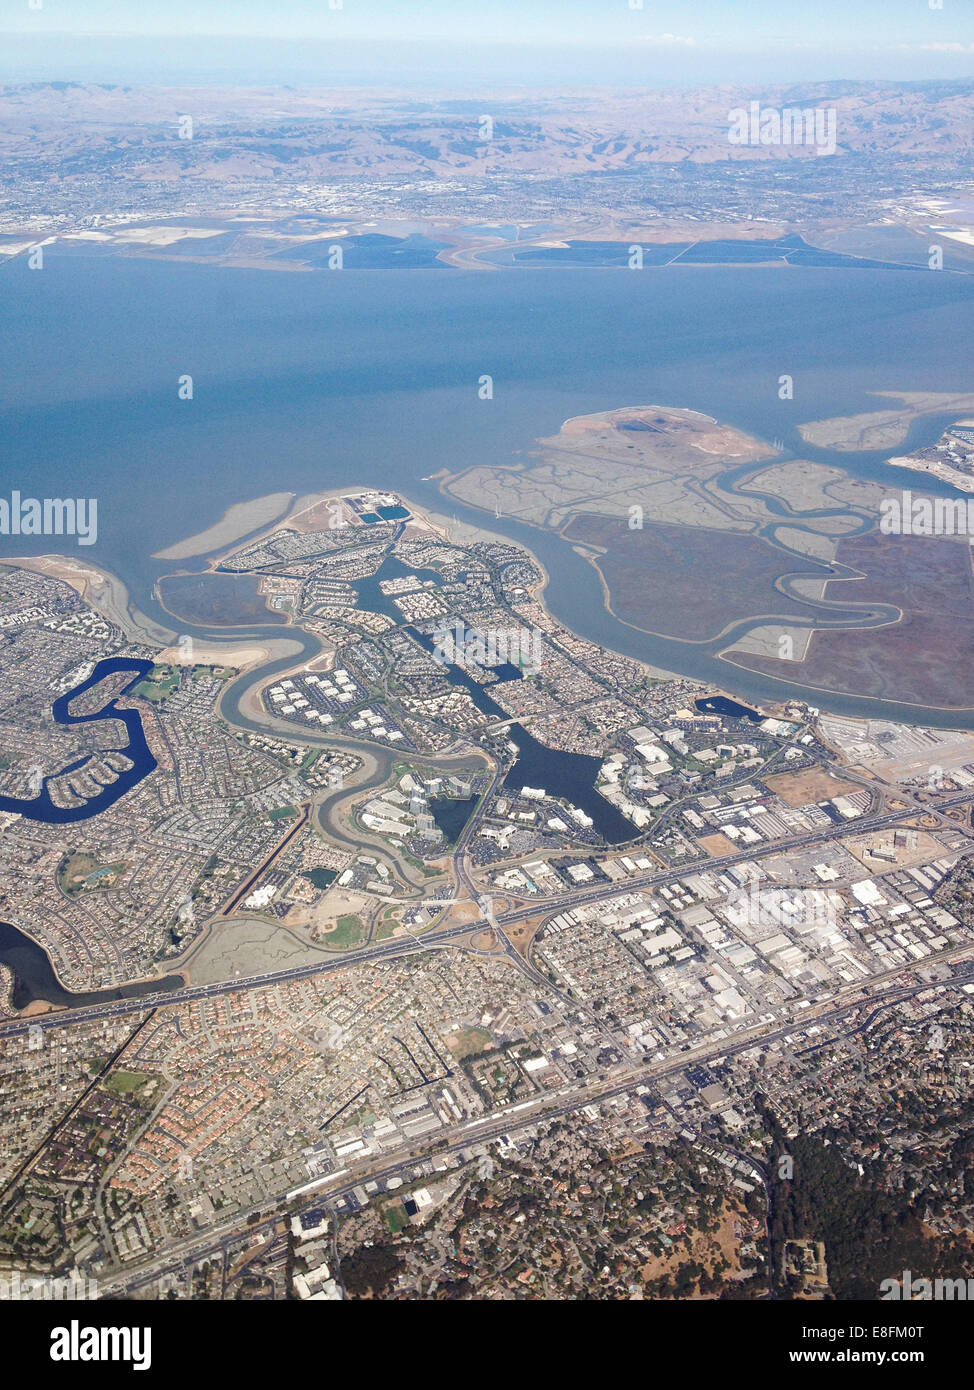 San Francisco, California, United States of America Agriculture And City Scape From Above - Stock Image